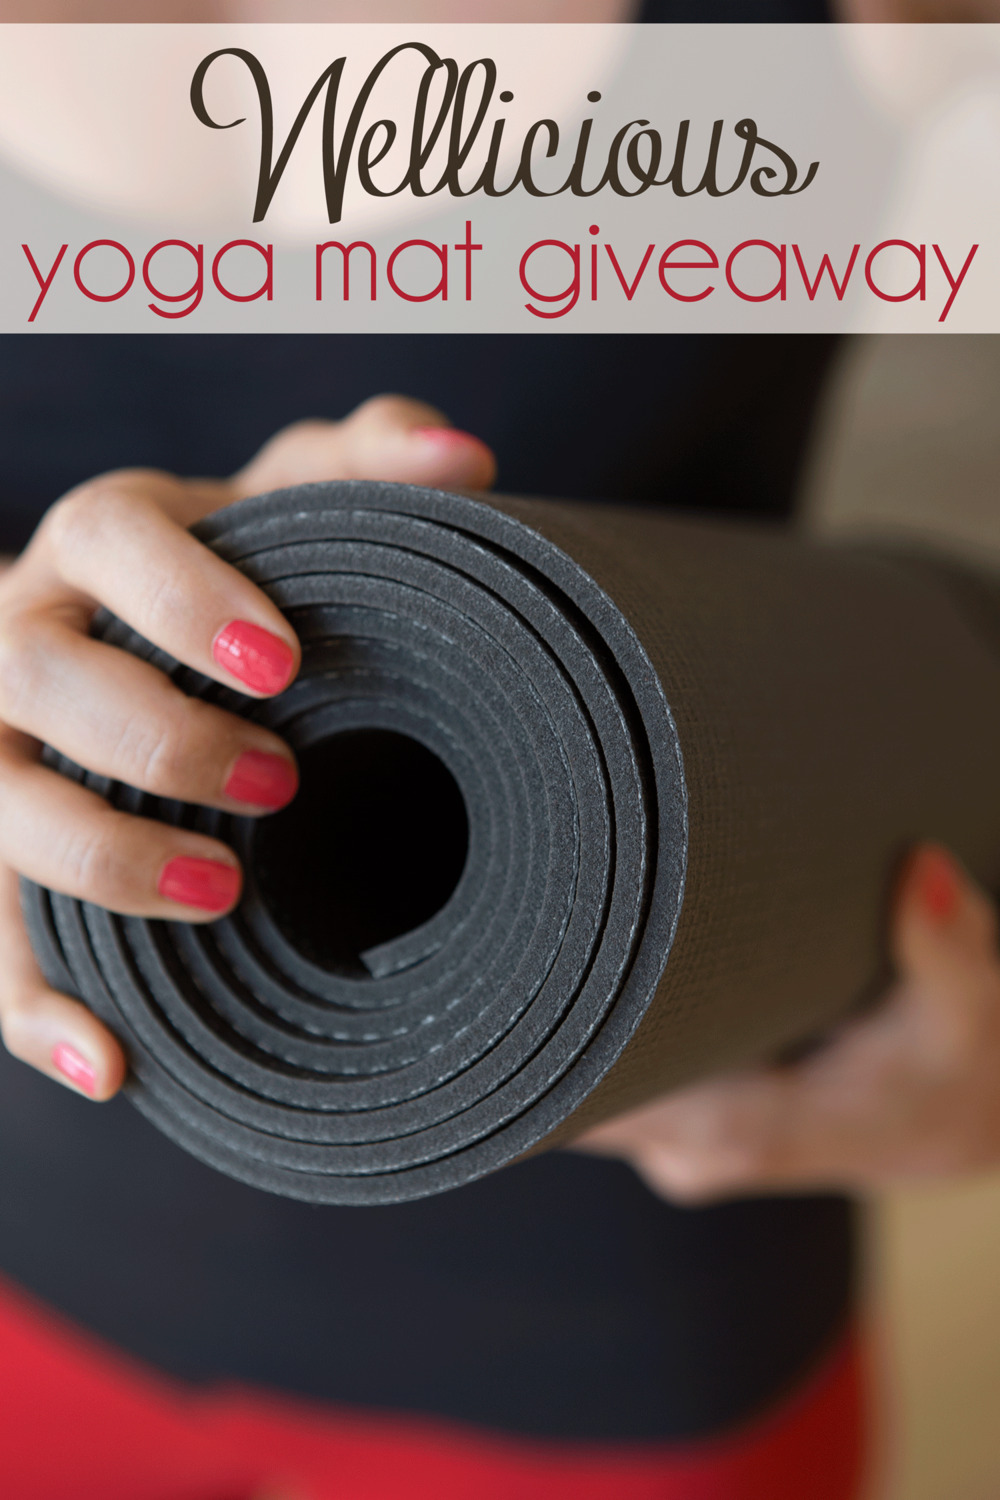 Pin it! A chance to win a Wellicious Divine Mat (value of $139.95)